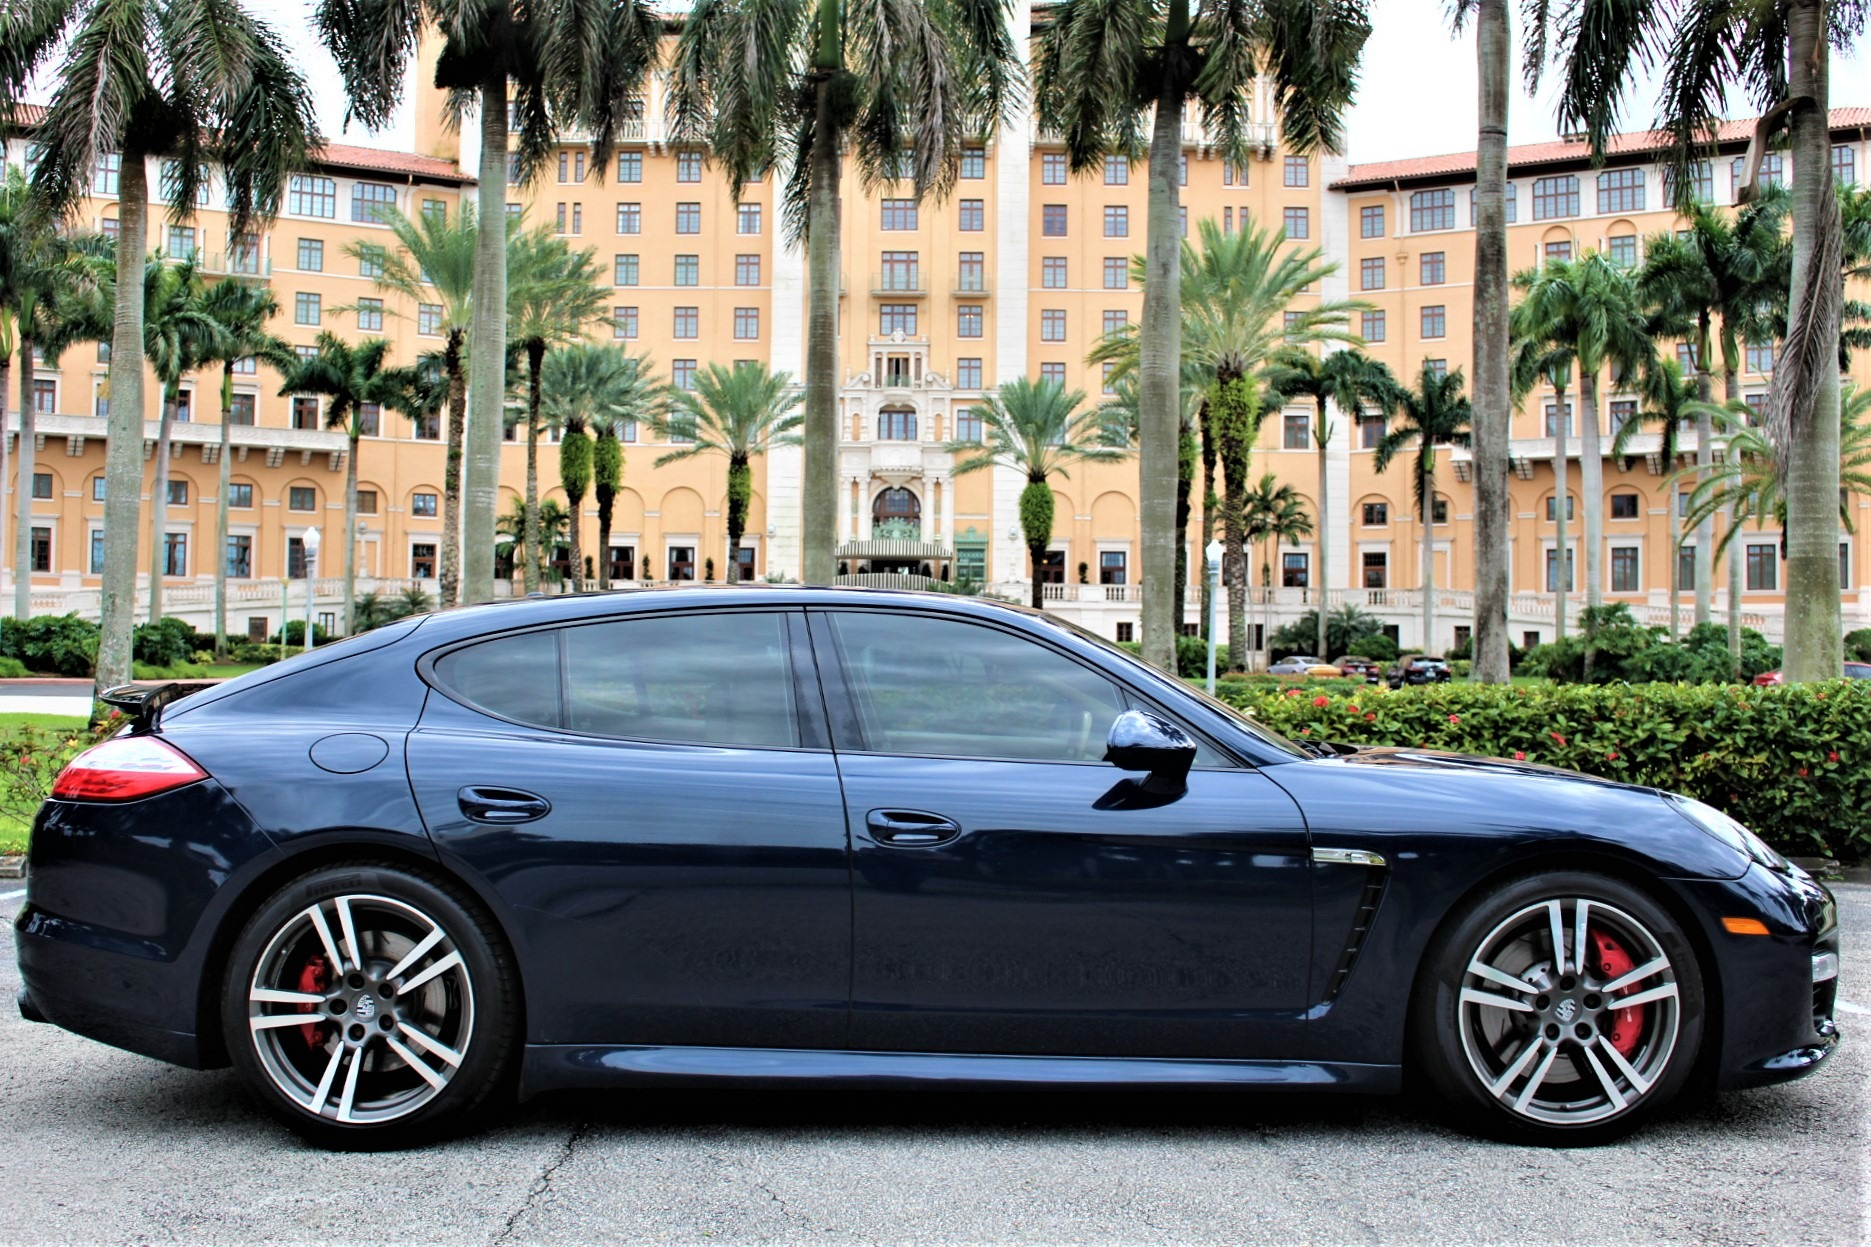 Used 2013 Porsche Panamera GTS for sale $39,950 at The Gables Sports Cars in Miami FL 33146 1